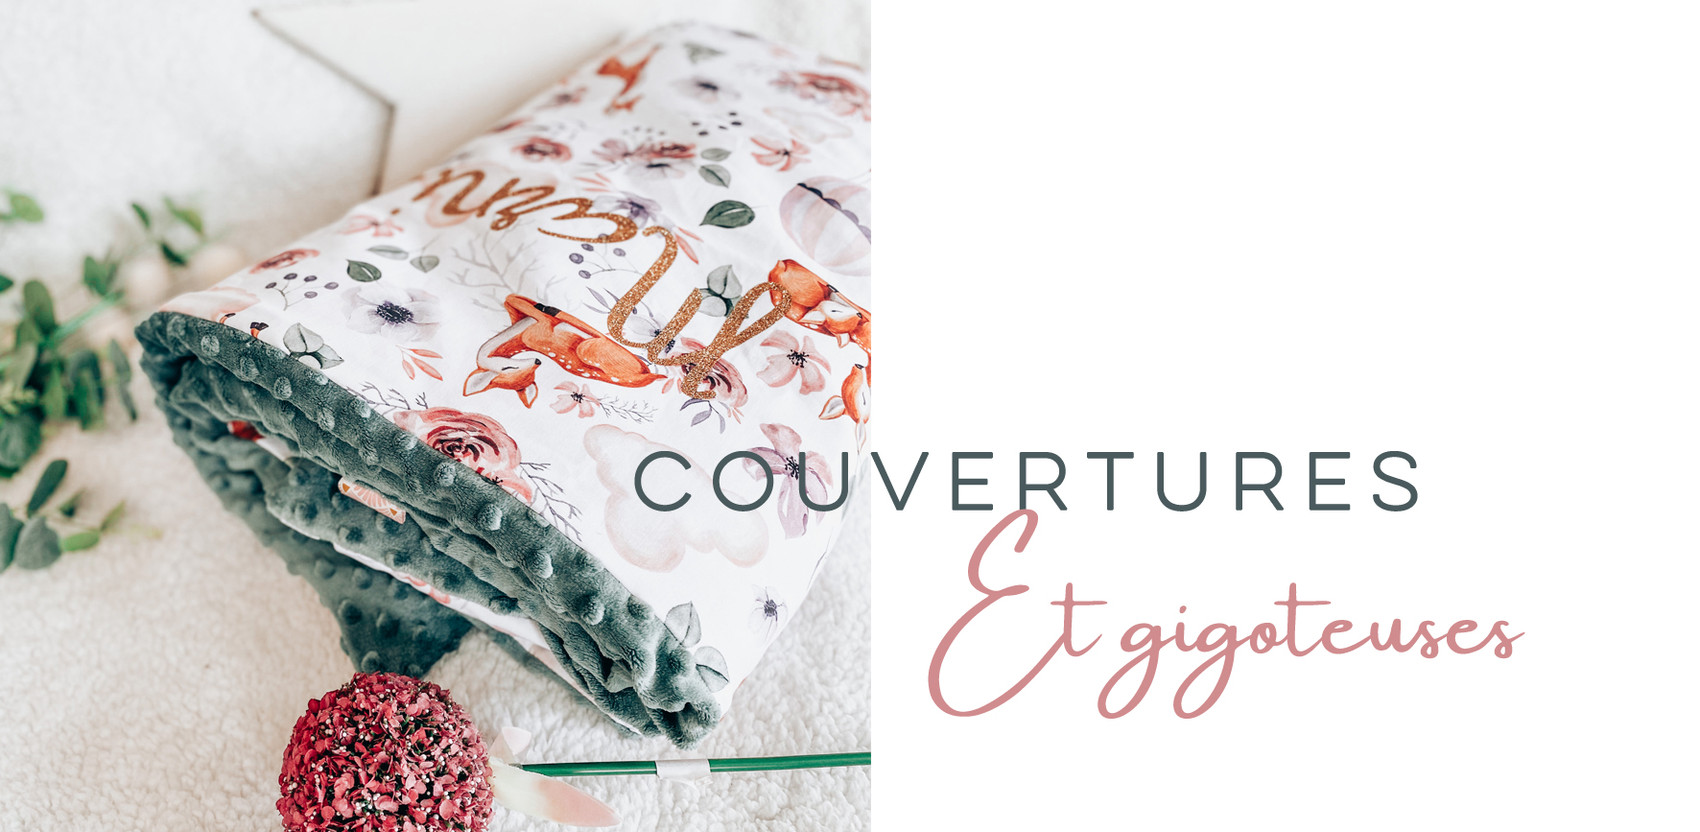 couvertures et gigoteuses.jpg